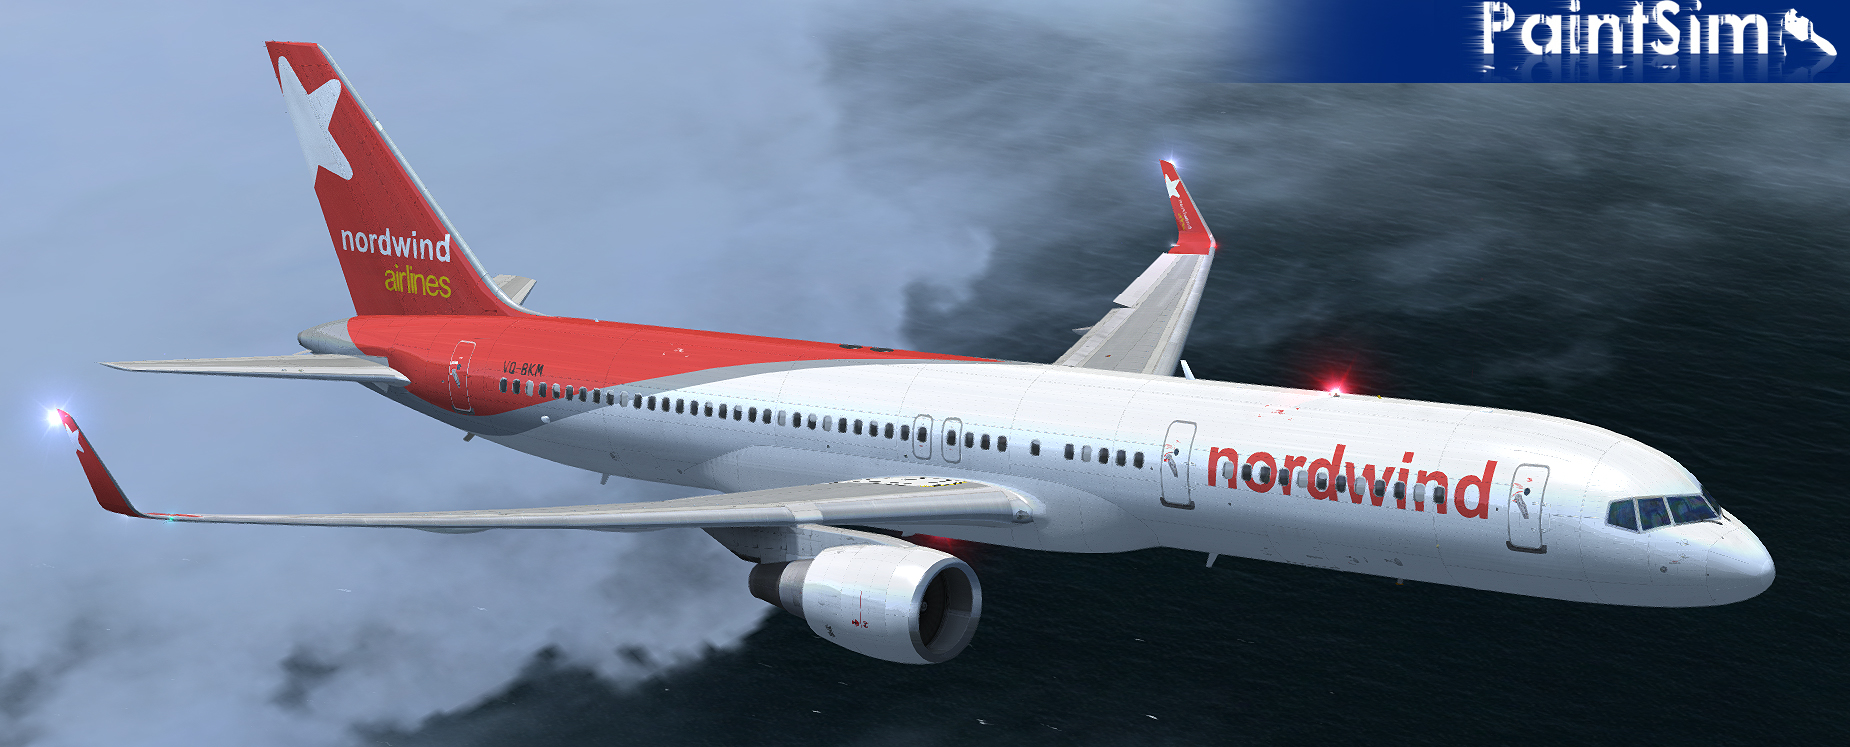 PAINTSIM - UHD TEXTURE PACK 9 FOR CAPTAIN SIM BOEING 757-200 III FSX P3D